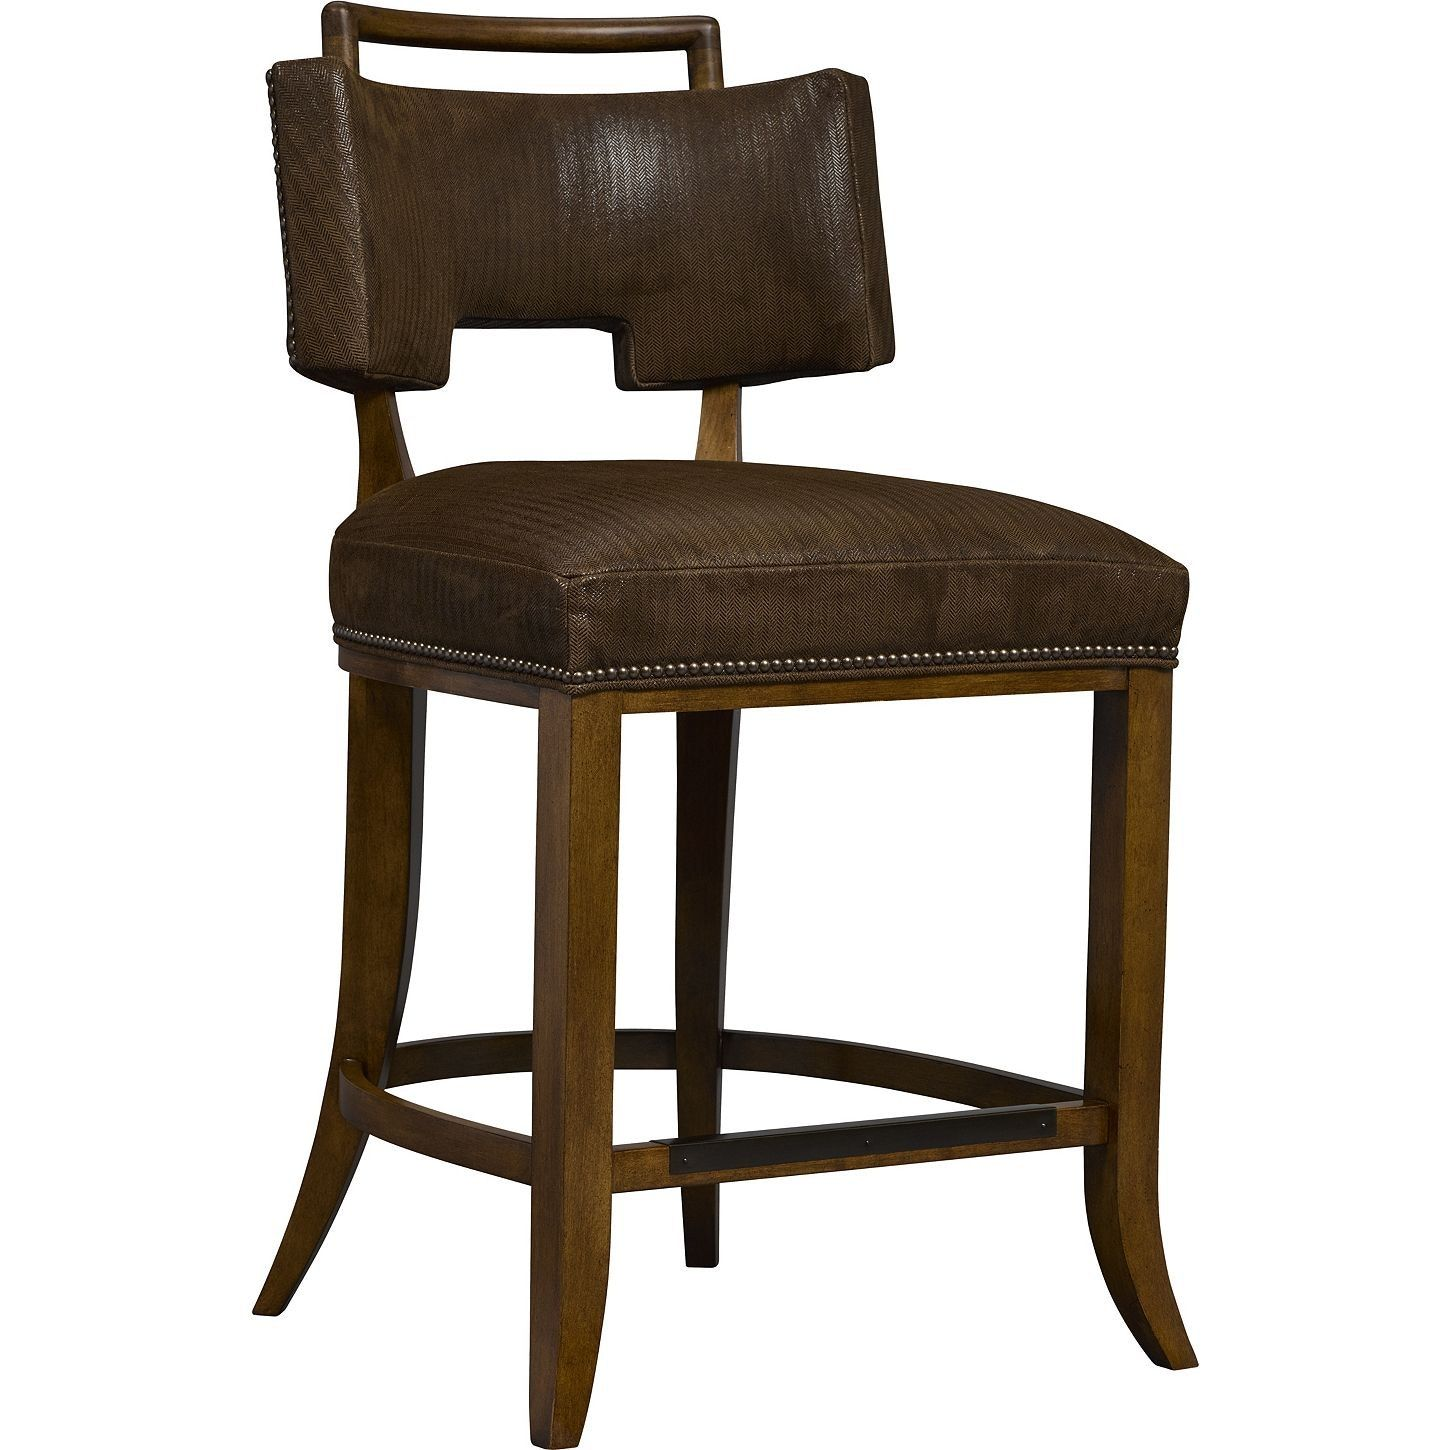 Astonishing Saint Giorgio Counter Stool With Handle By Hickory Chair Forskolin Free Trial Chair Design Images Forskolin Free Trialorg